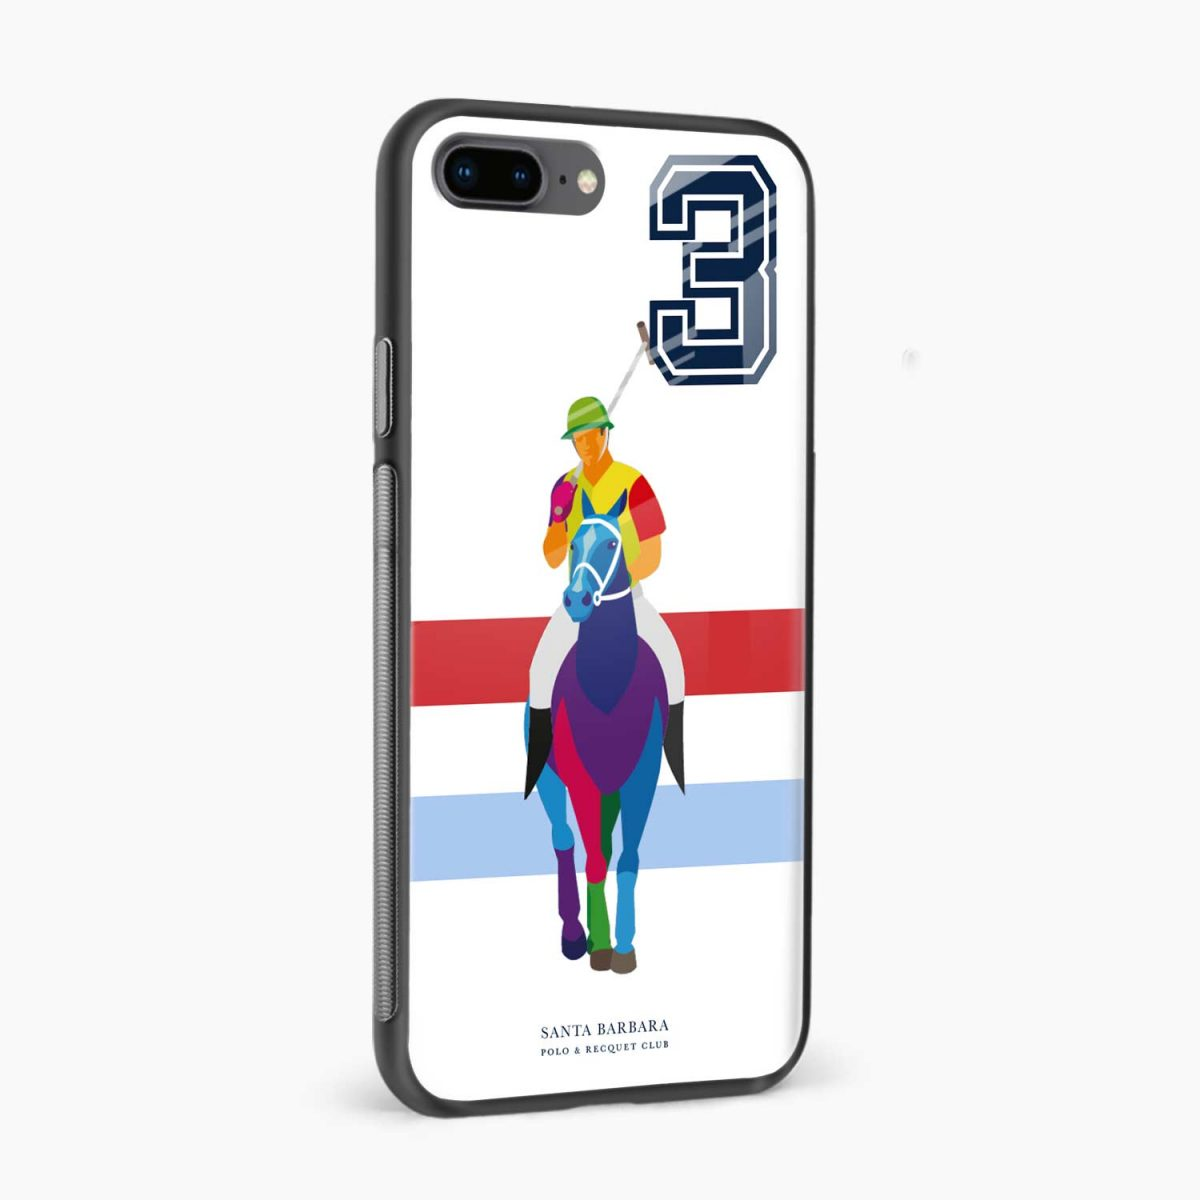 multicolor sant barbara polo side view apple iphone 7 8 plus back cover